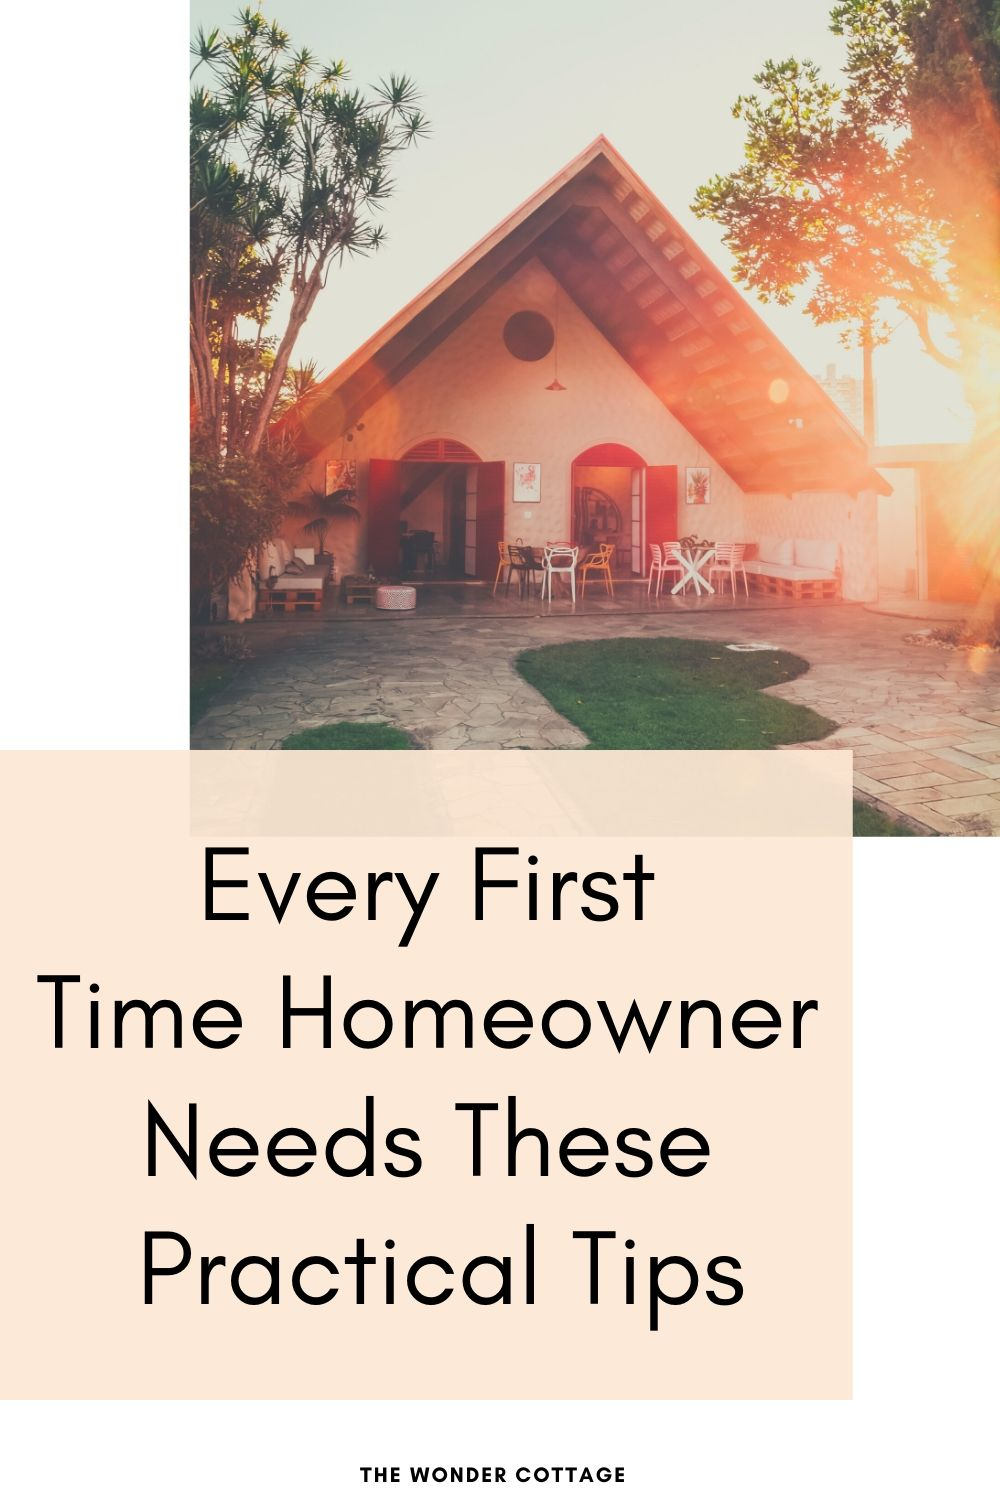 Every First-Time Homeowner Needs These Practical Tips